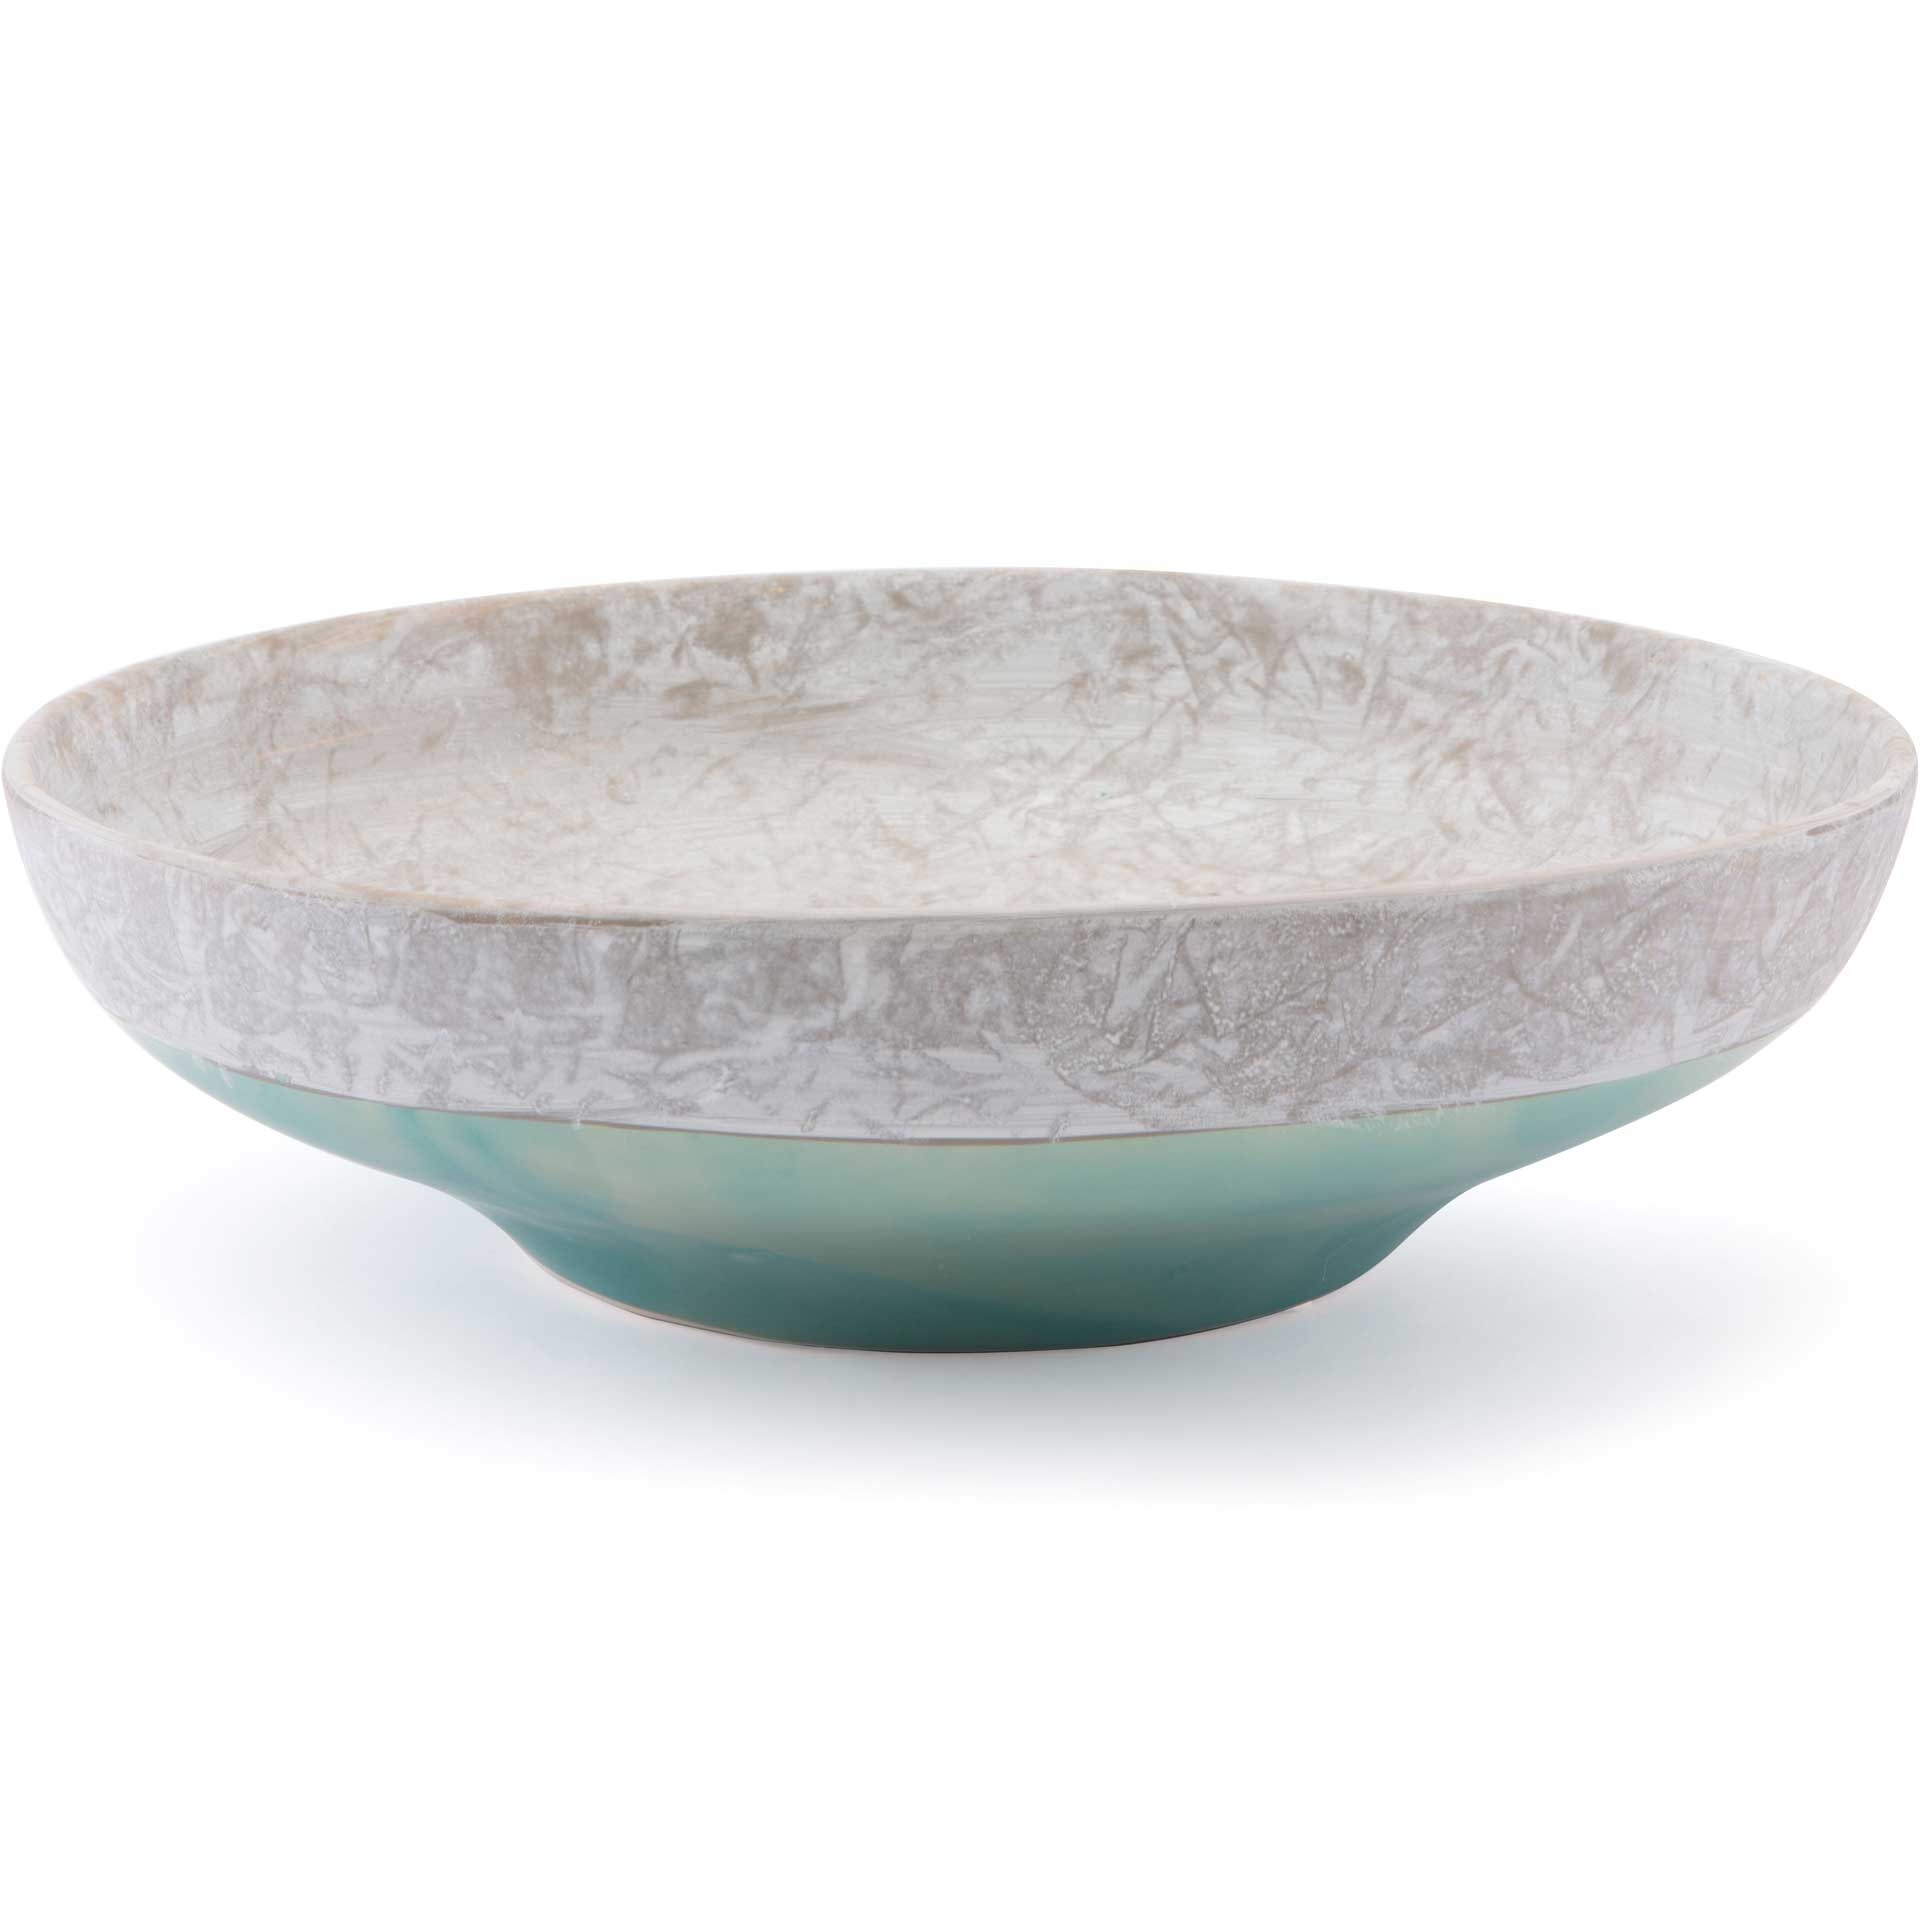 Azte Bowl Gray/Teal